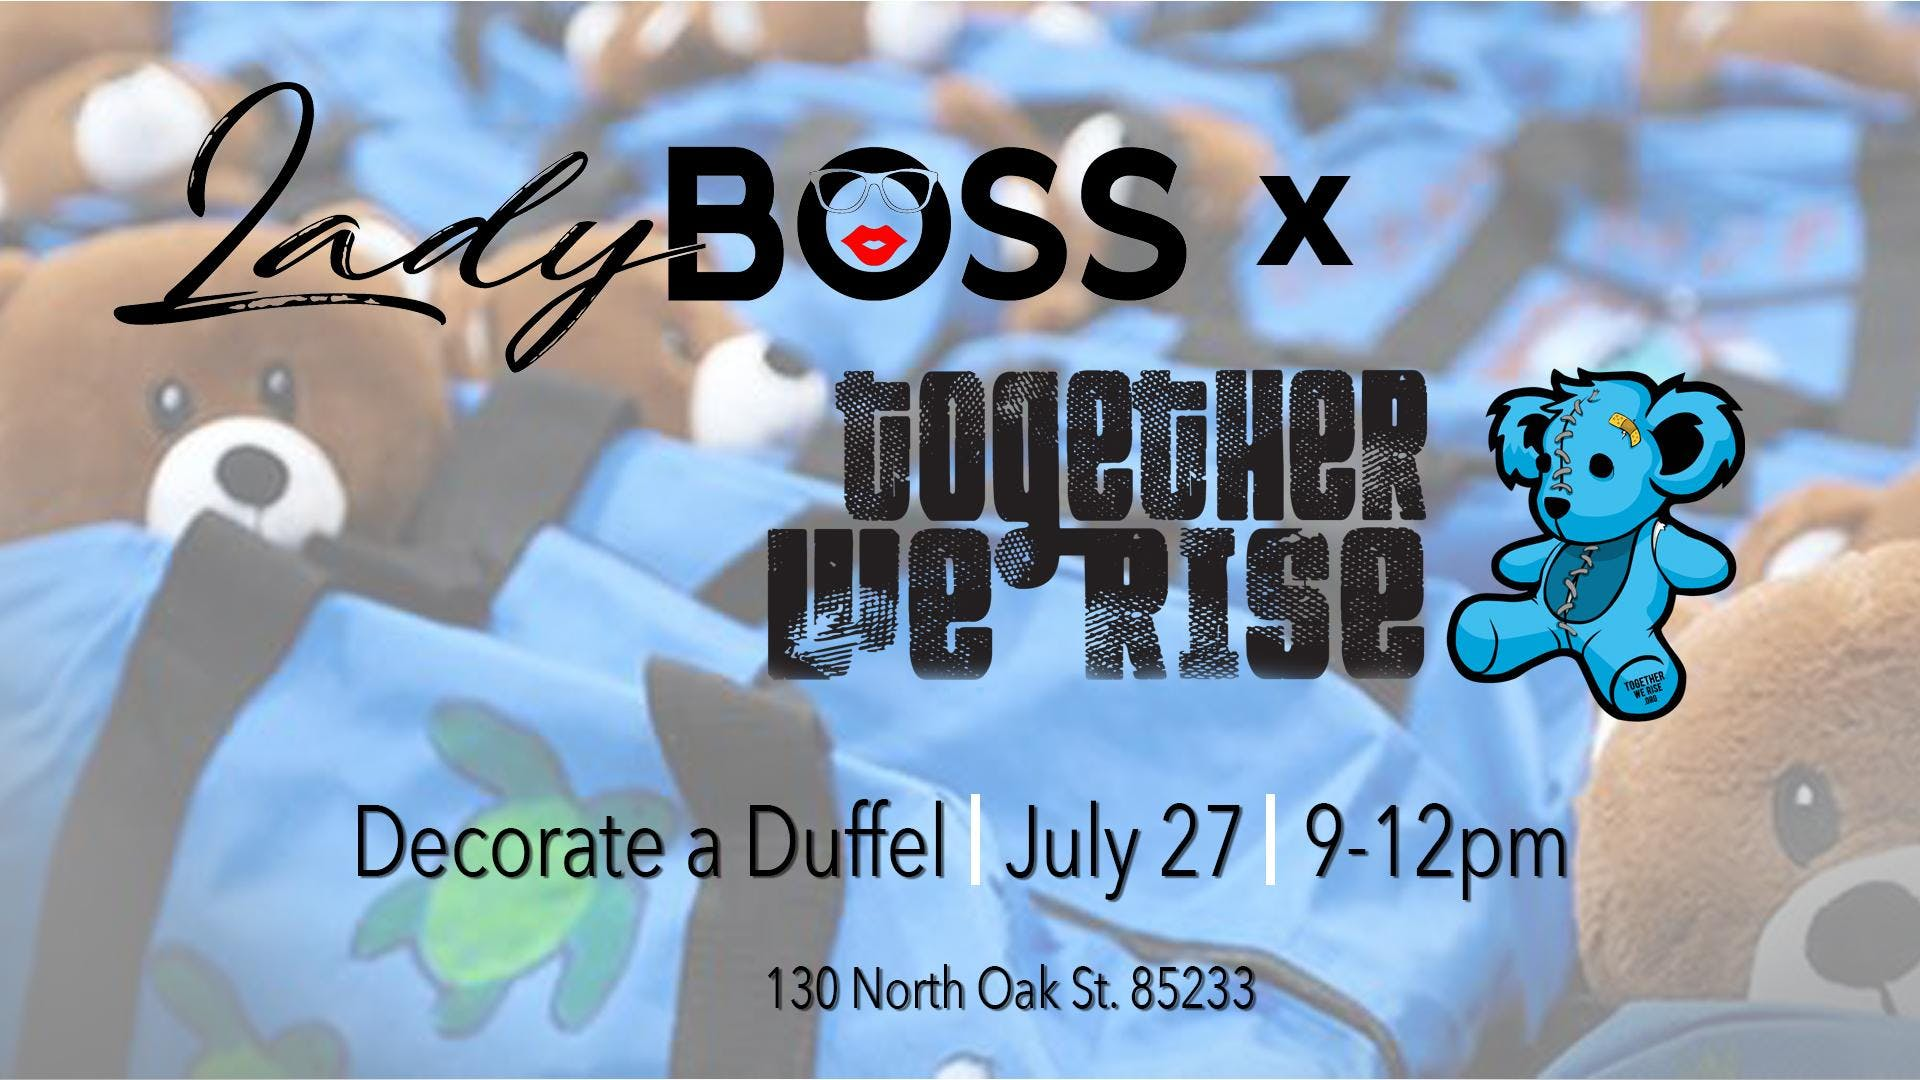 LadyBoss x Together We Rise Sweet Case Event